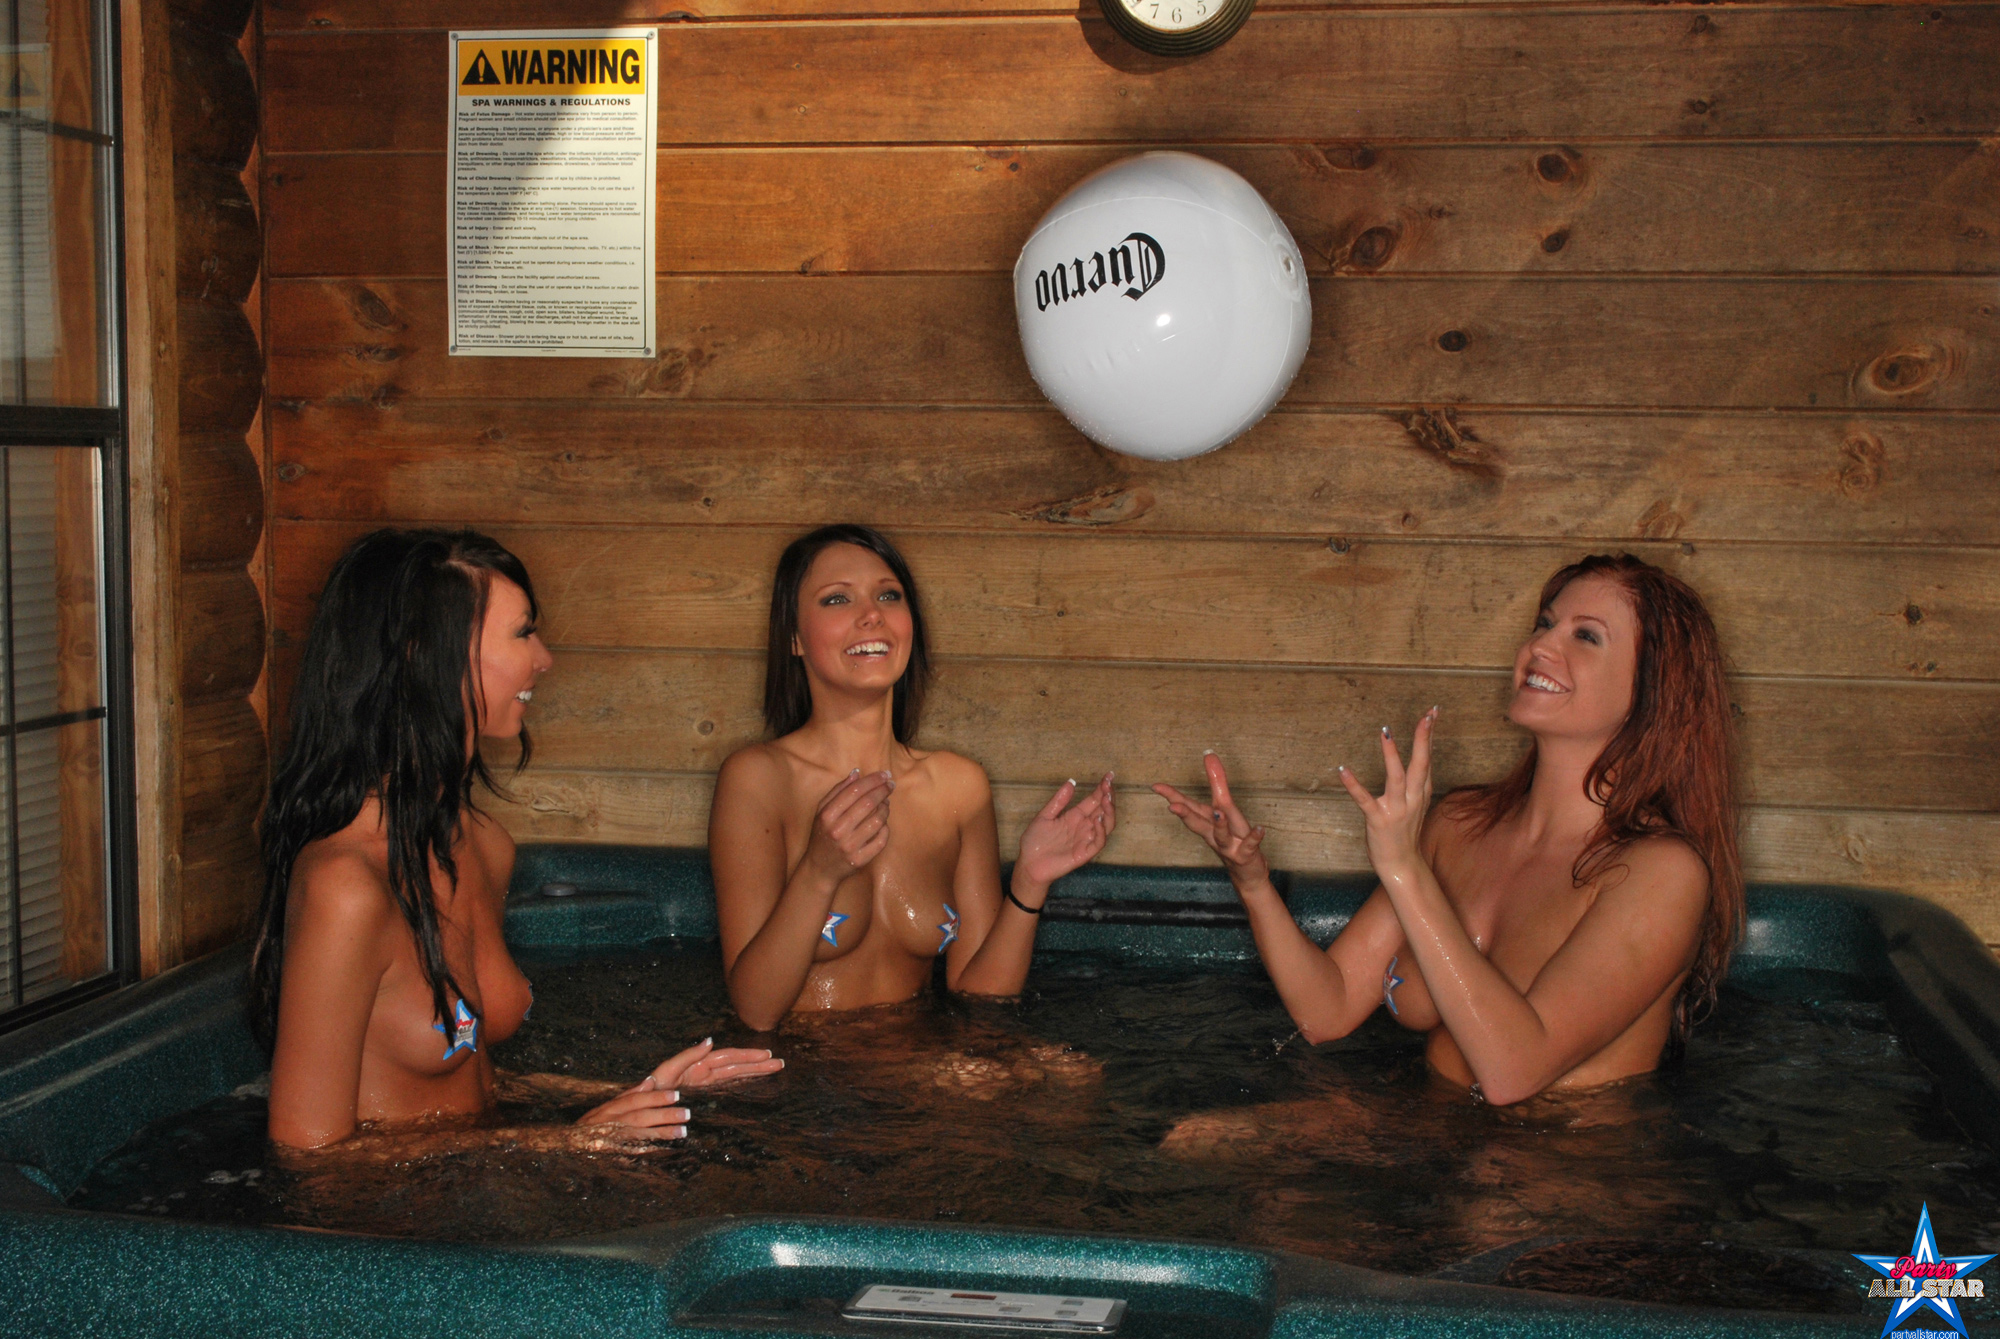 Teen girls in hot tubs for explanation